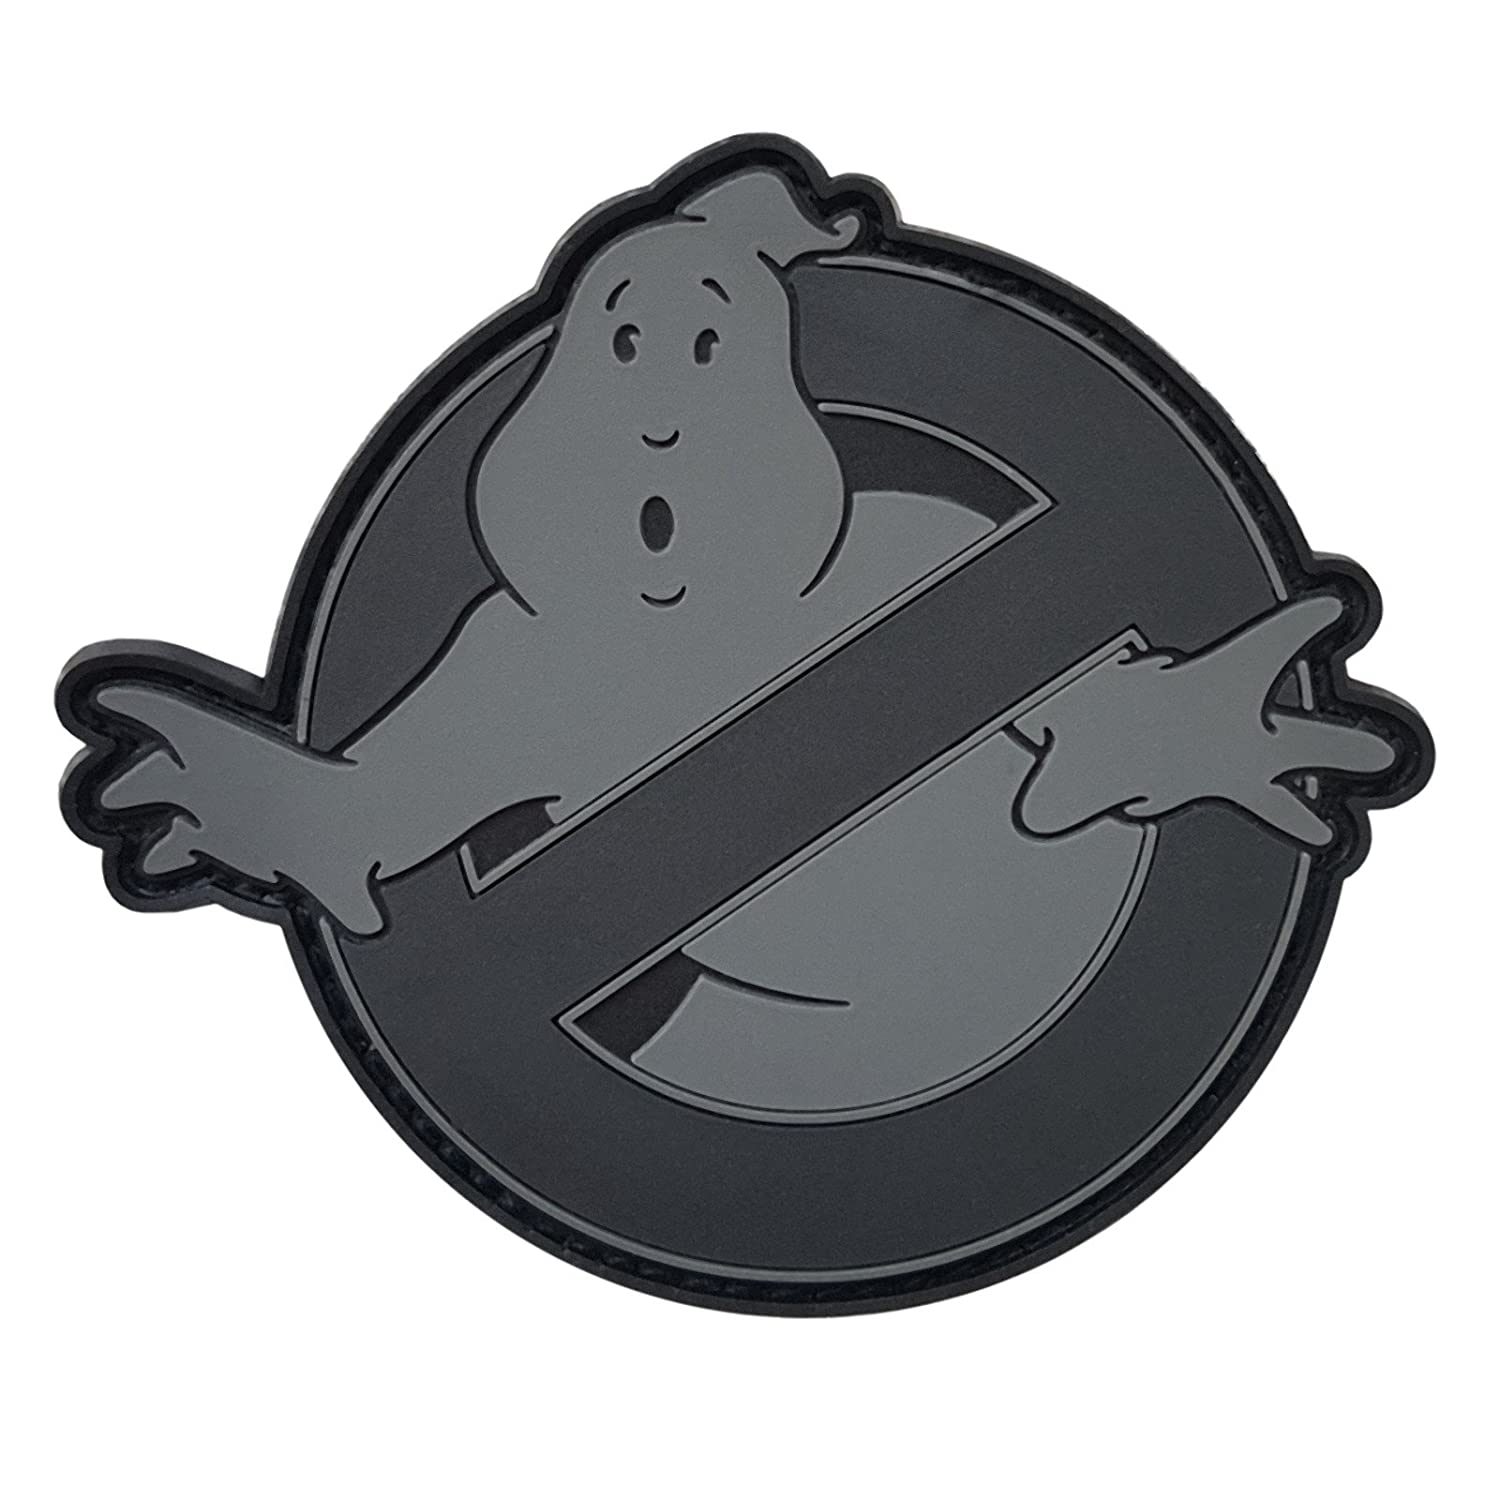 ACU Ghostbusters No Ghost Subdued Cosplay Movie PVC Rubber 3D Fastener Patch 2AFTER1 P.1771.2.V